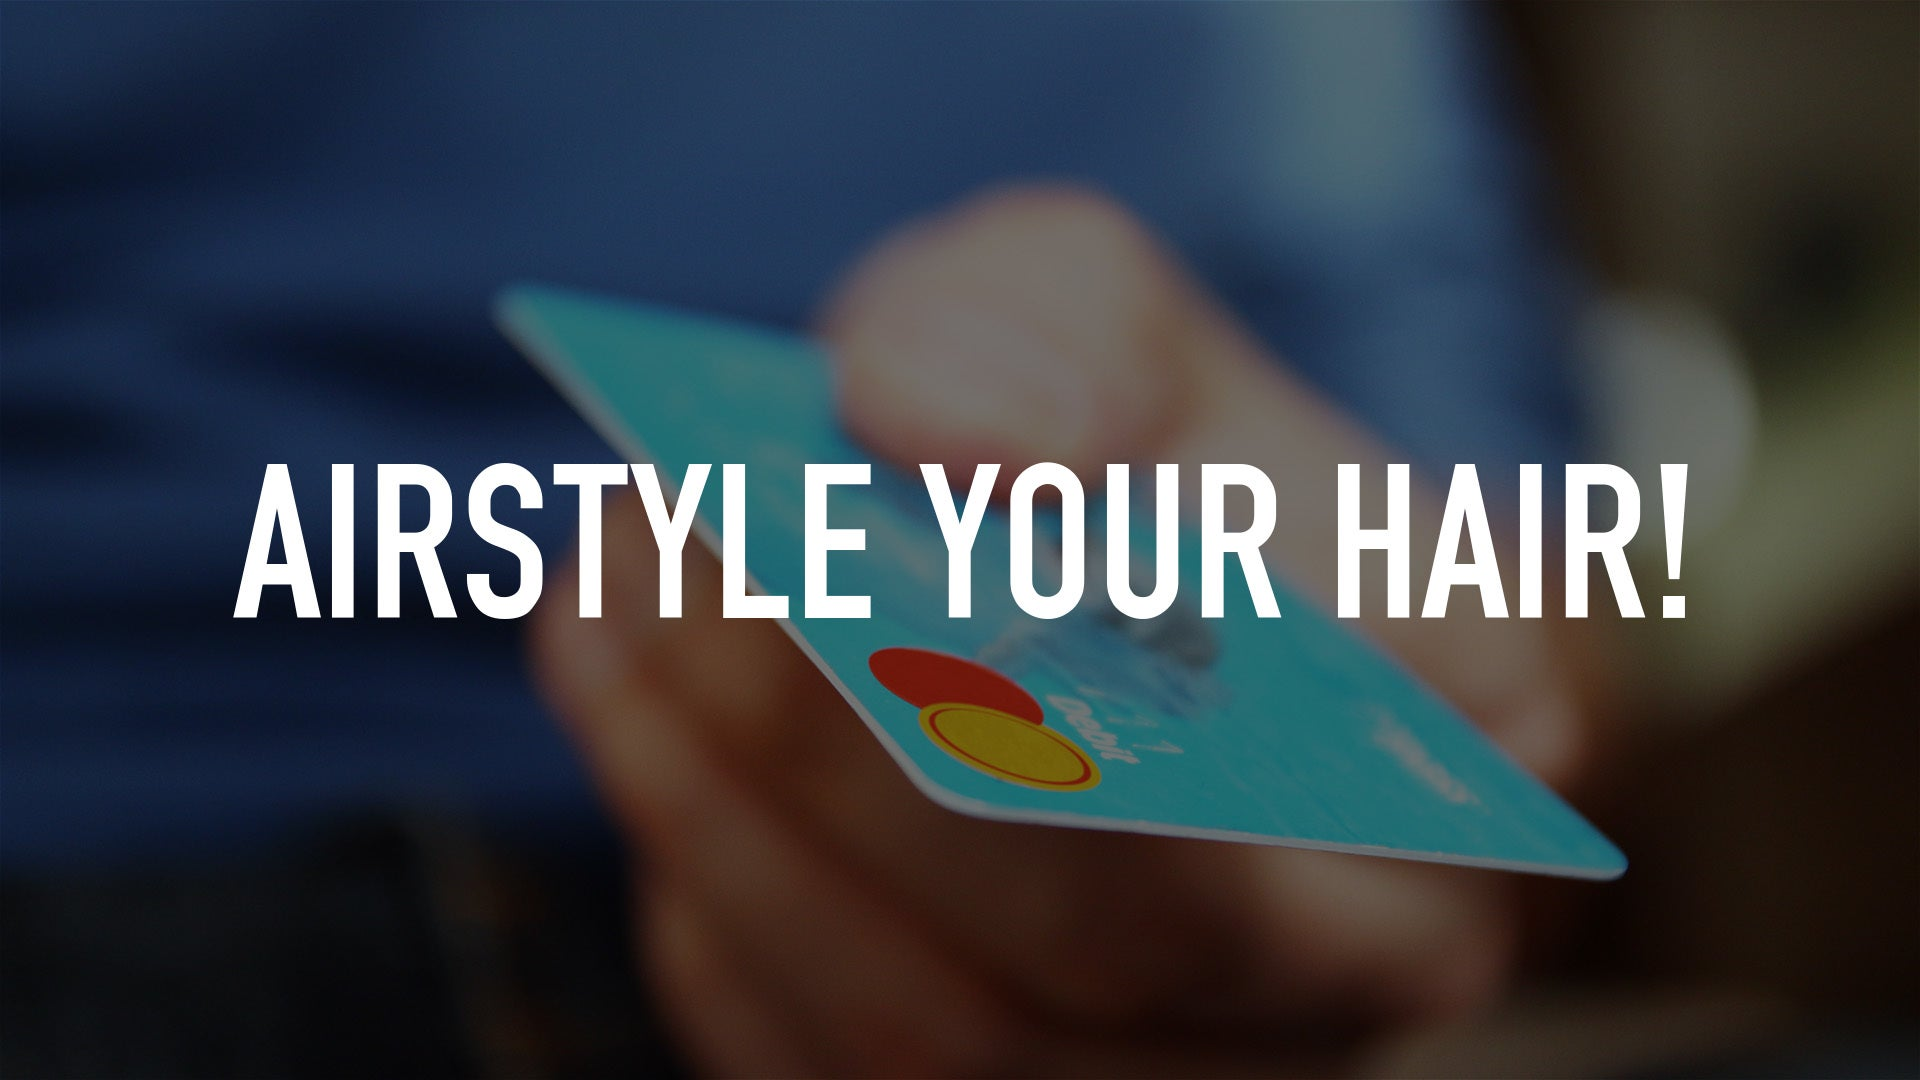 Airstyle Your Hair!